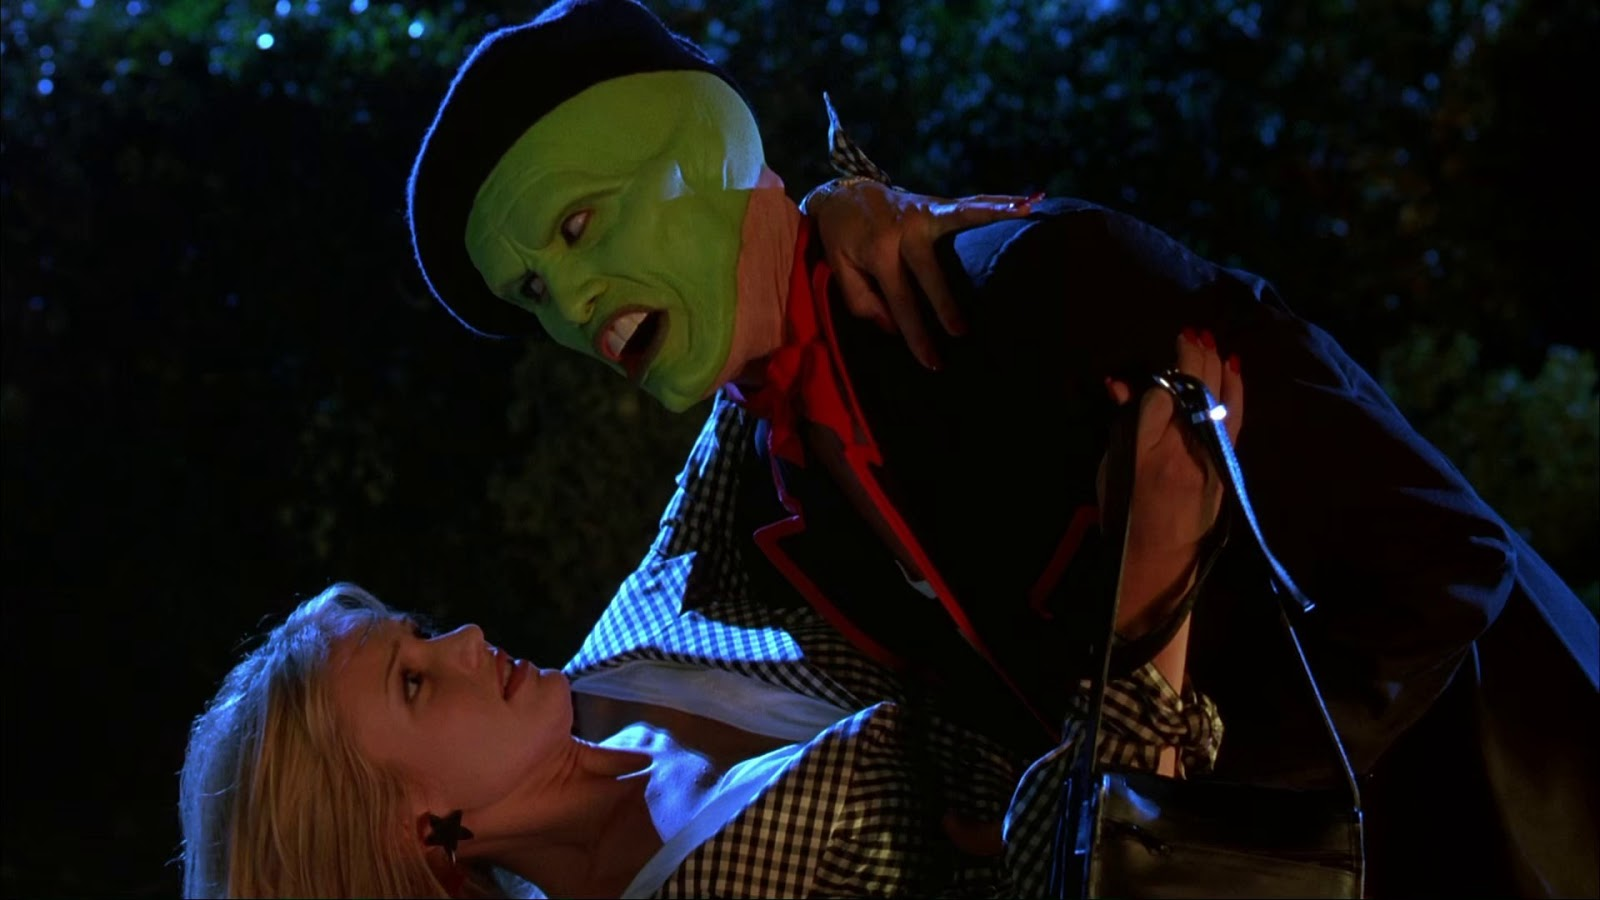 The Mask (1994) 2